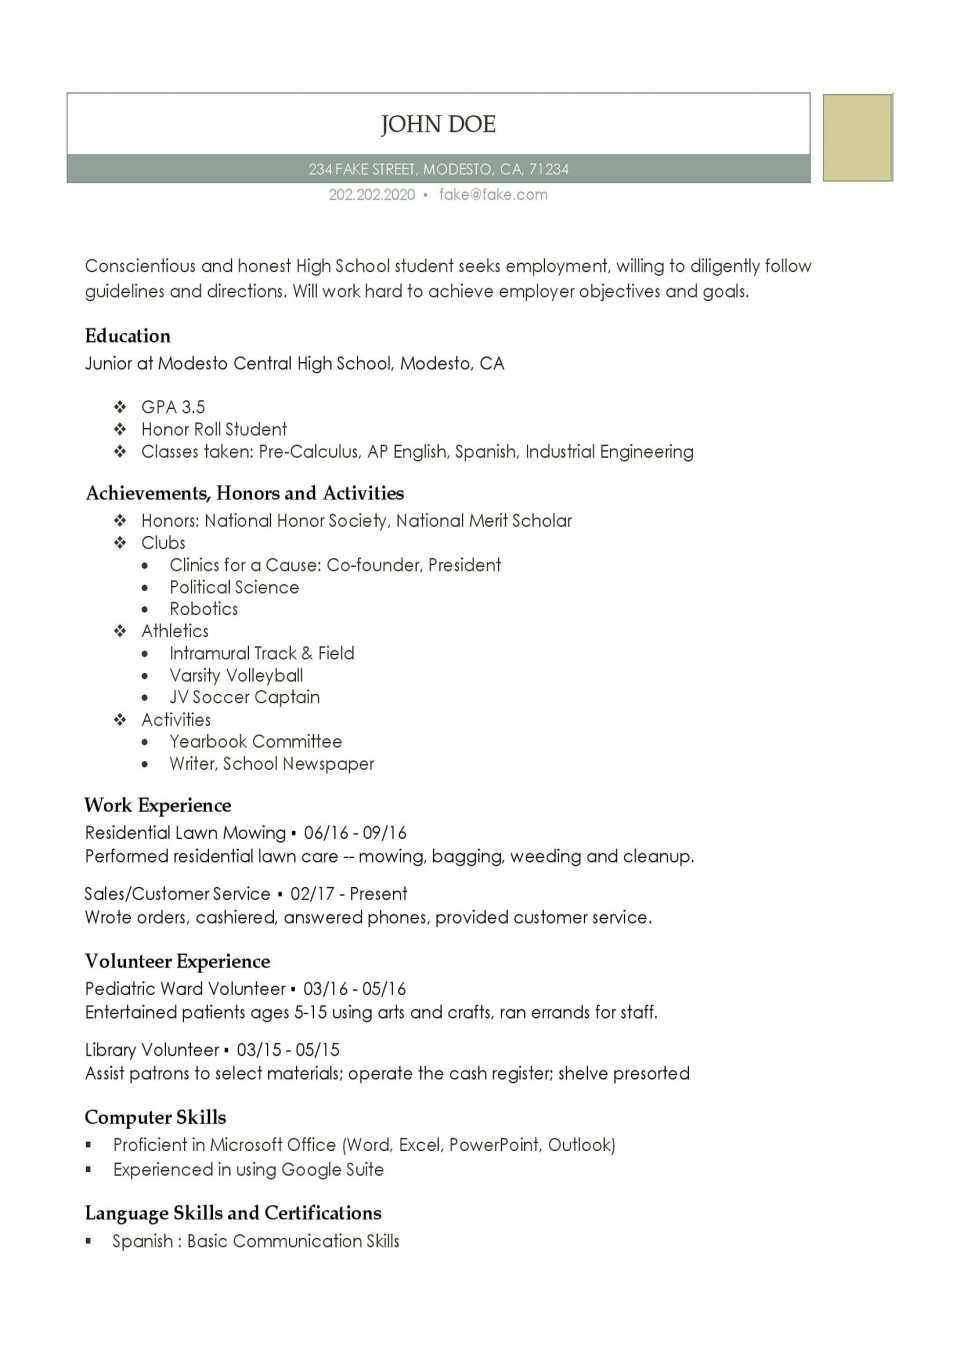 002 Incredible Student Resume Template Word Image  High School Free College Microsoft Download960